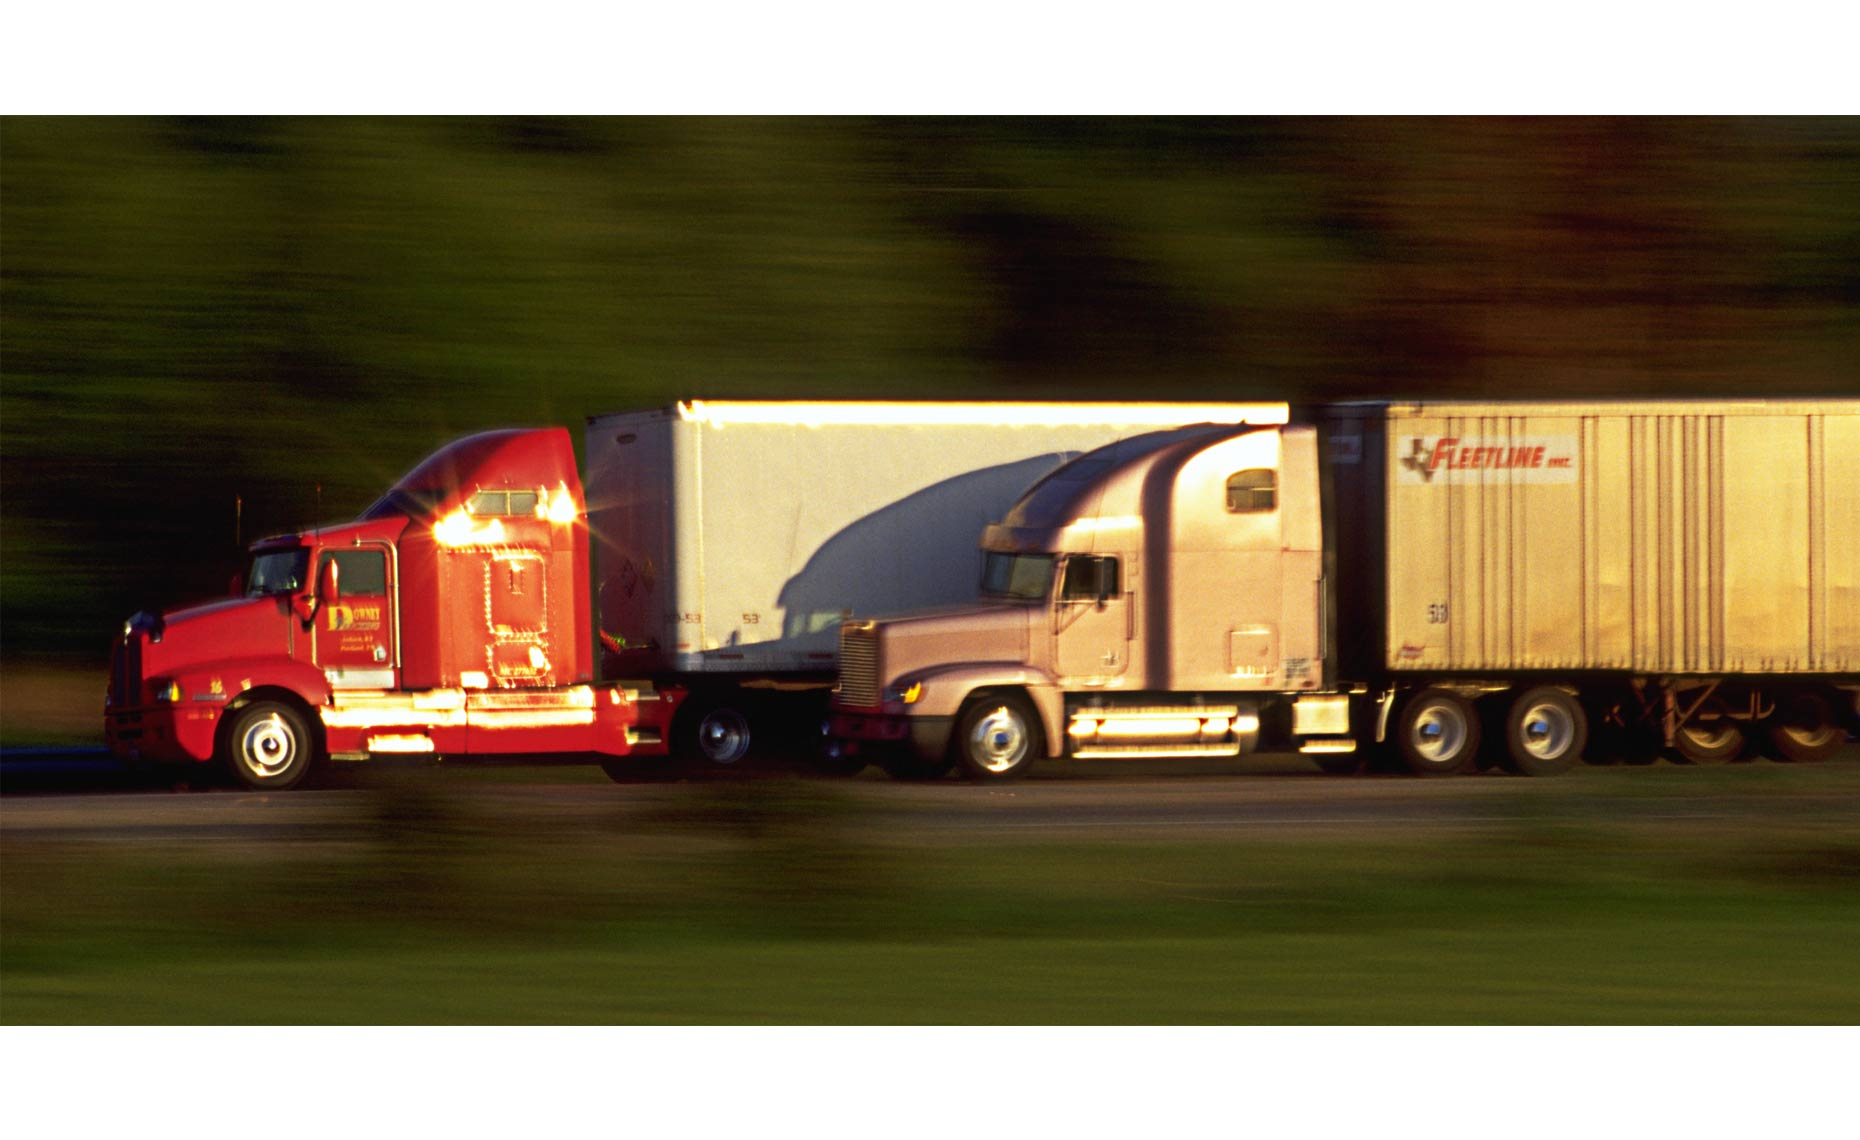 2-trucks-in-motion